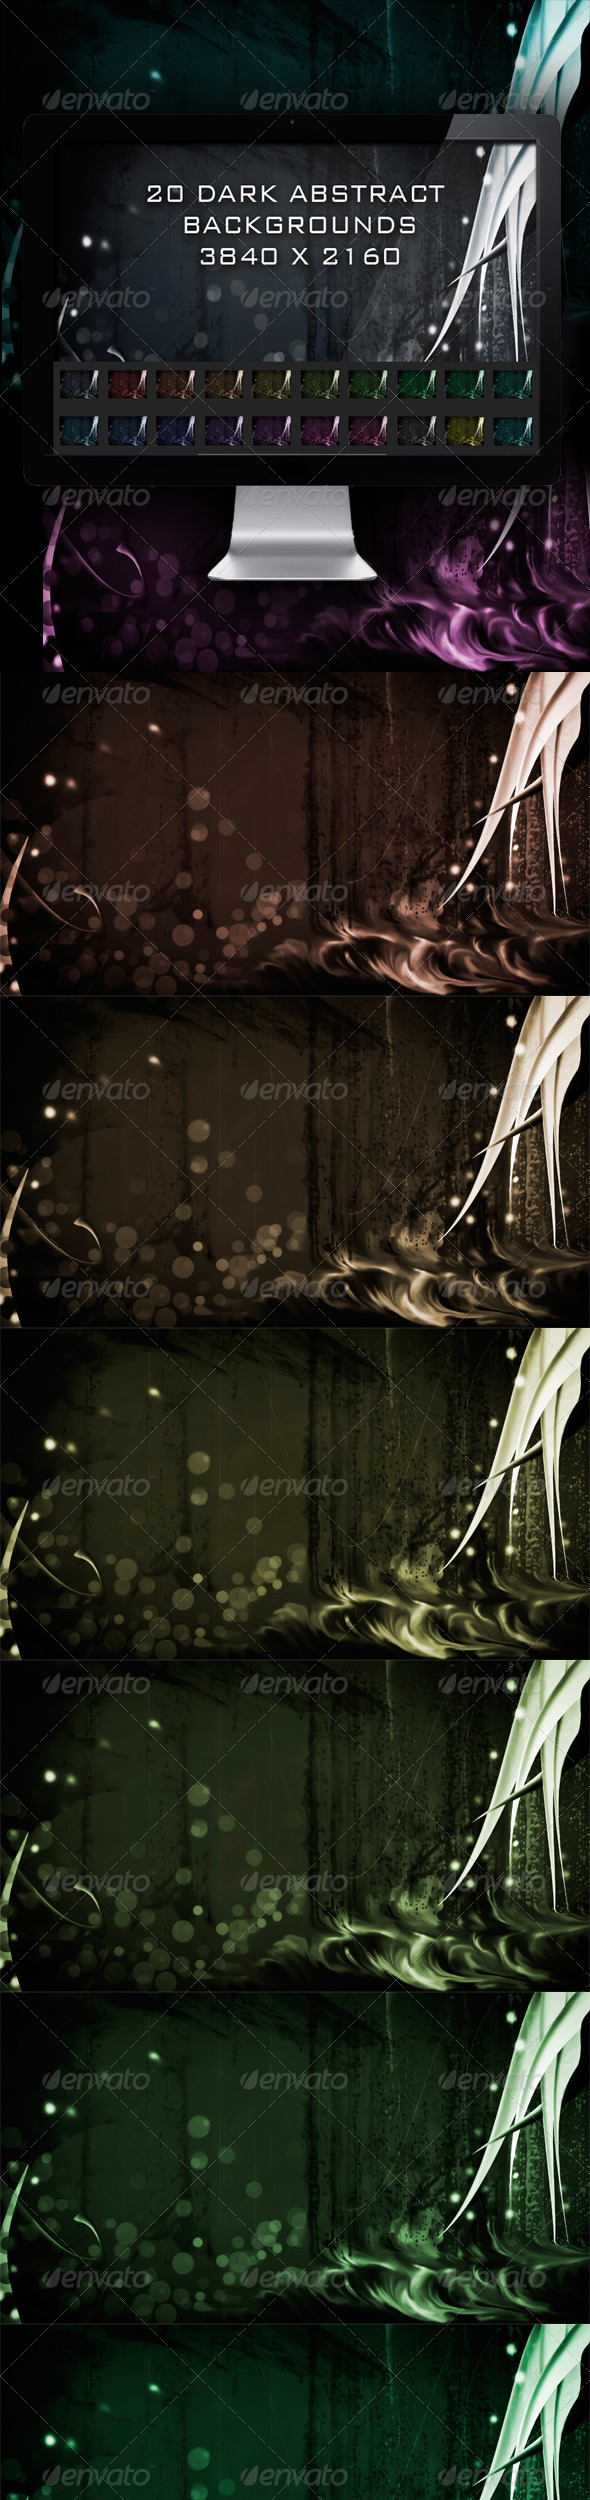 20 Dark Abstract Backgrounds - Abstract Backgrounds